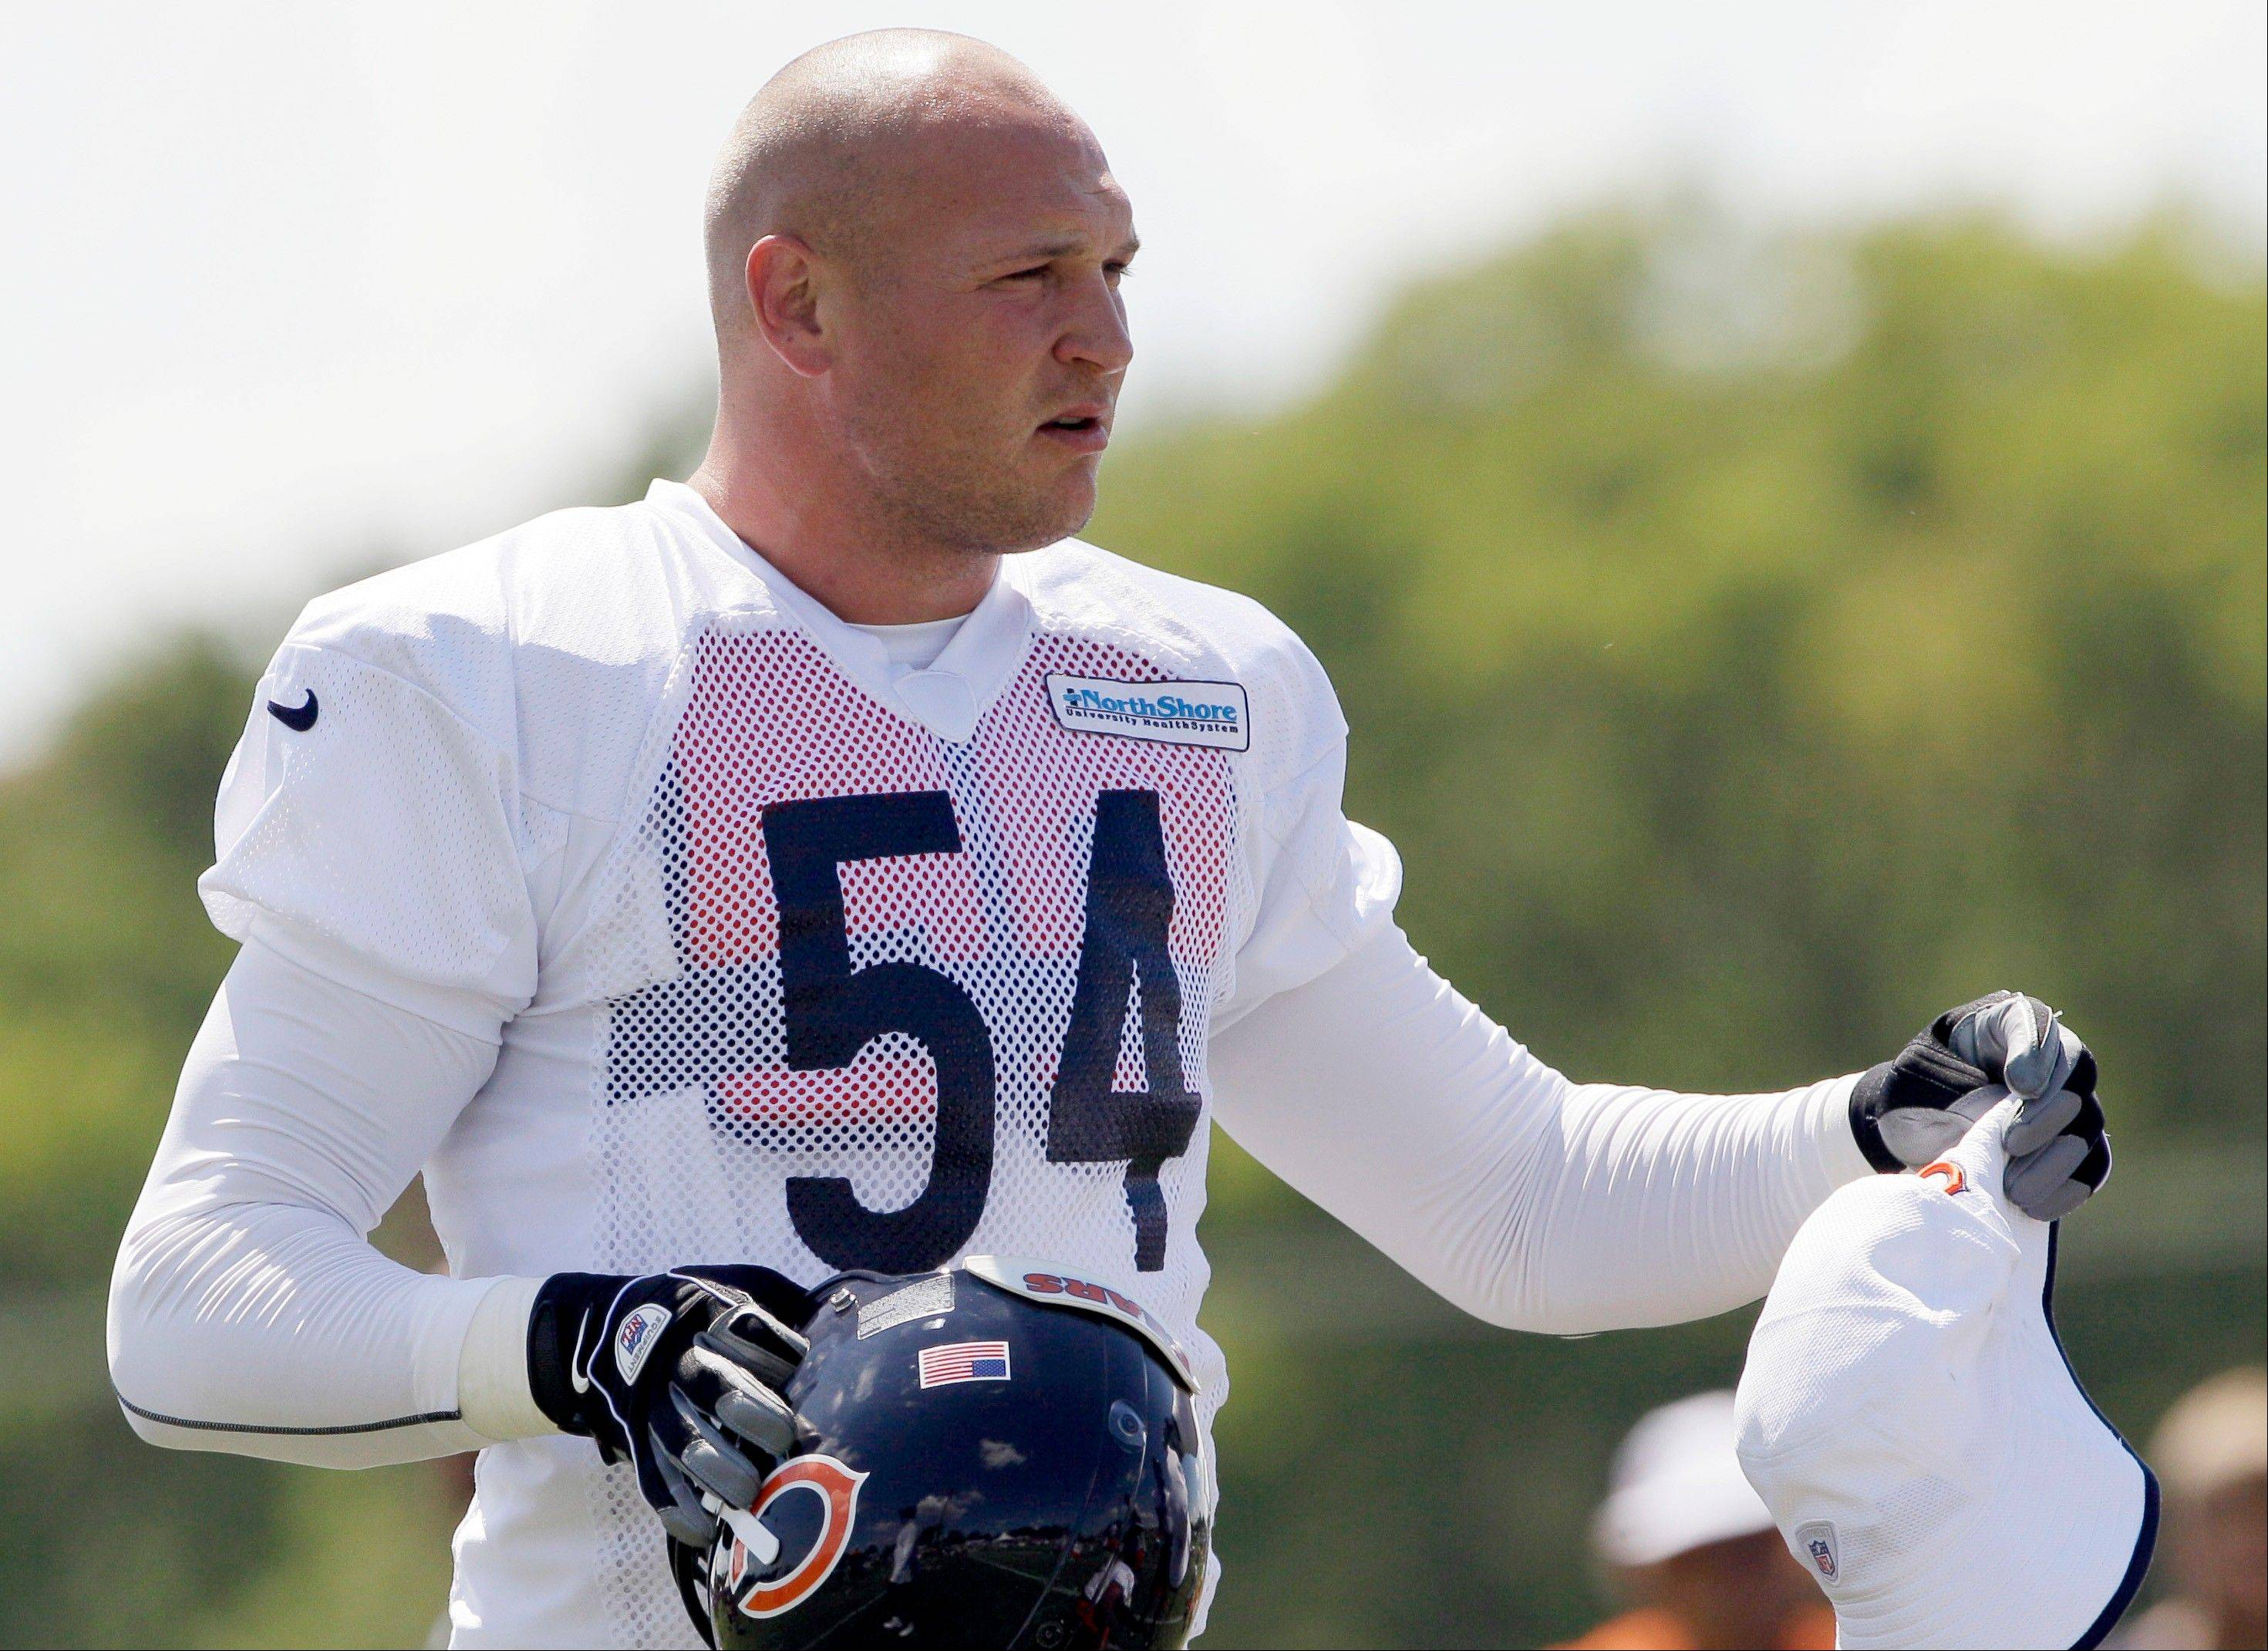 Bears' Urlacher has 'good first day back'